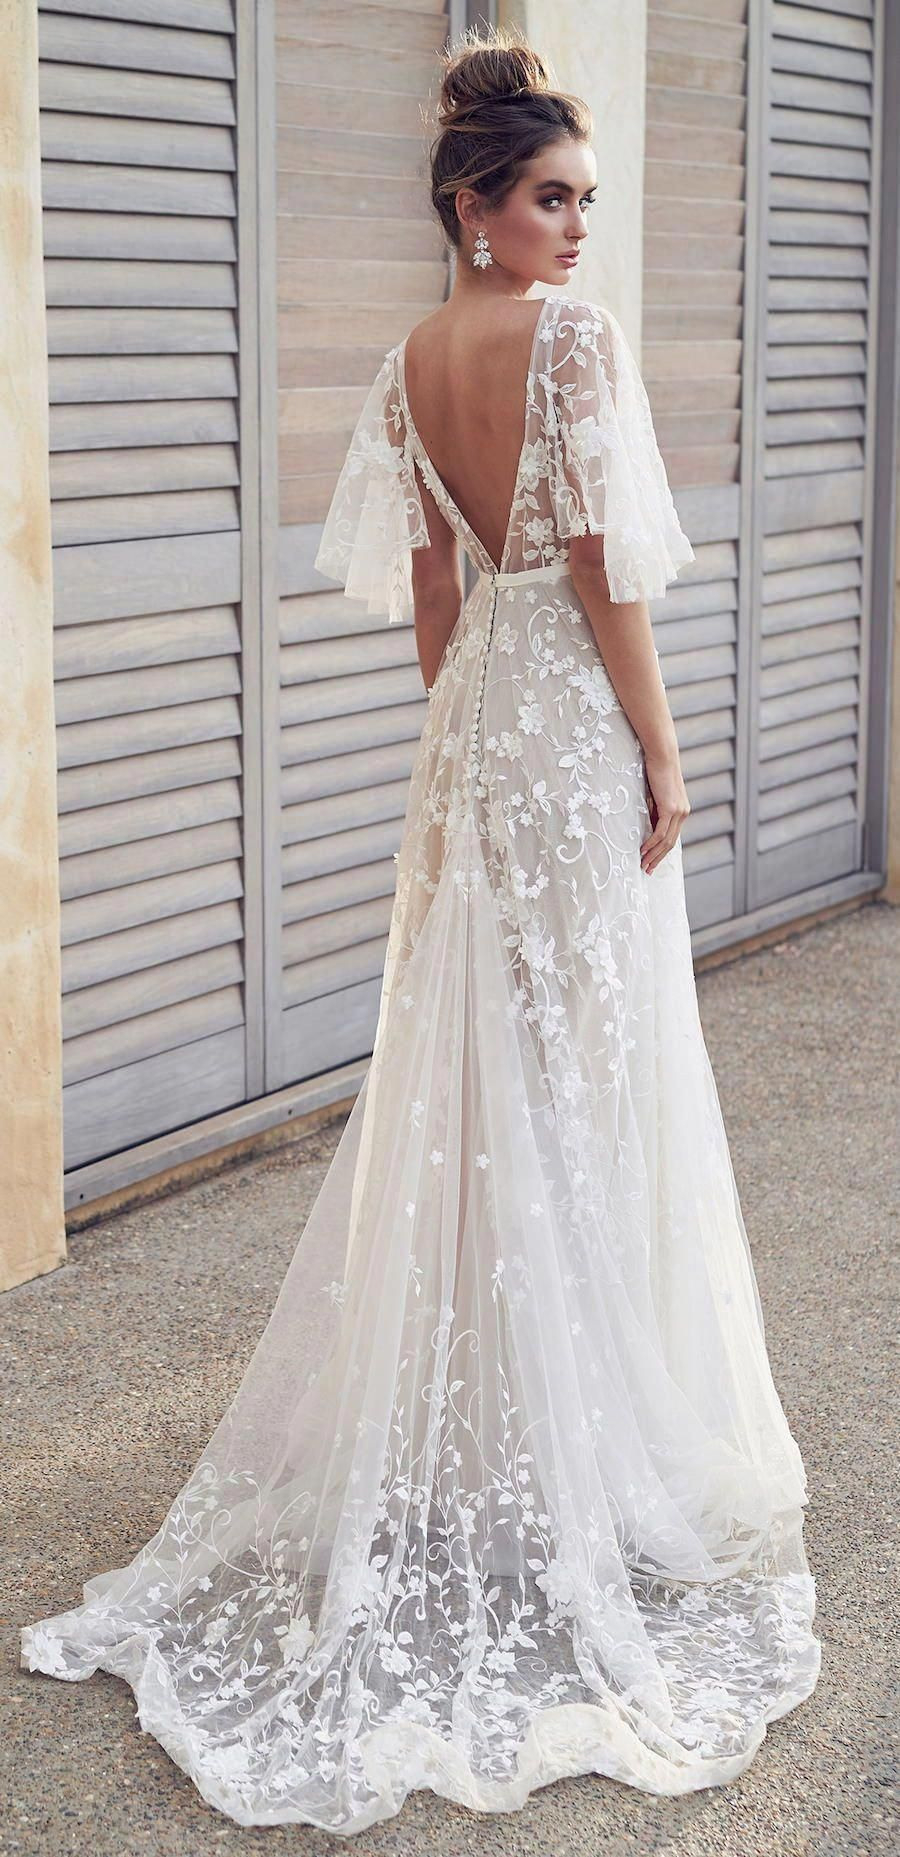 Weddings #weddingdresses | Dresses In 2019 | Boho